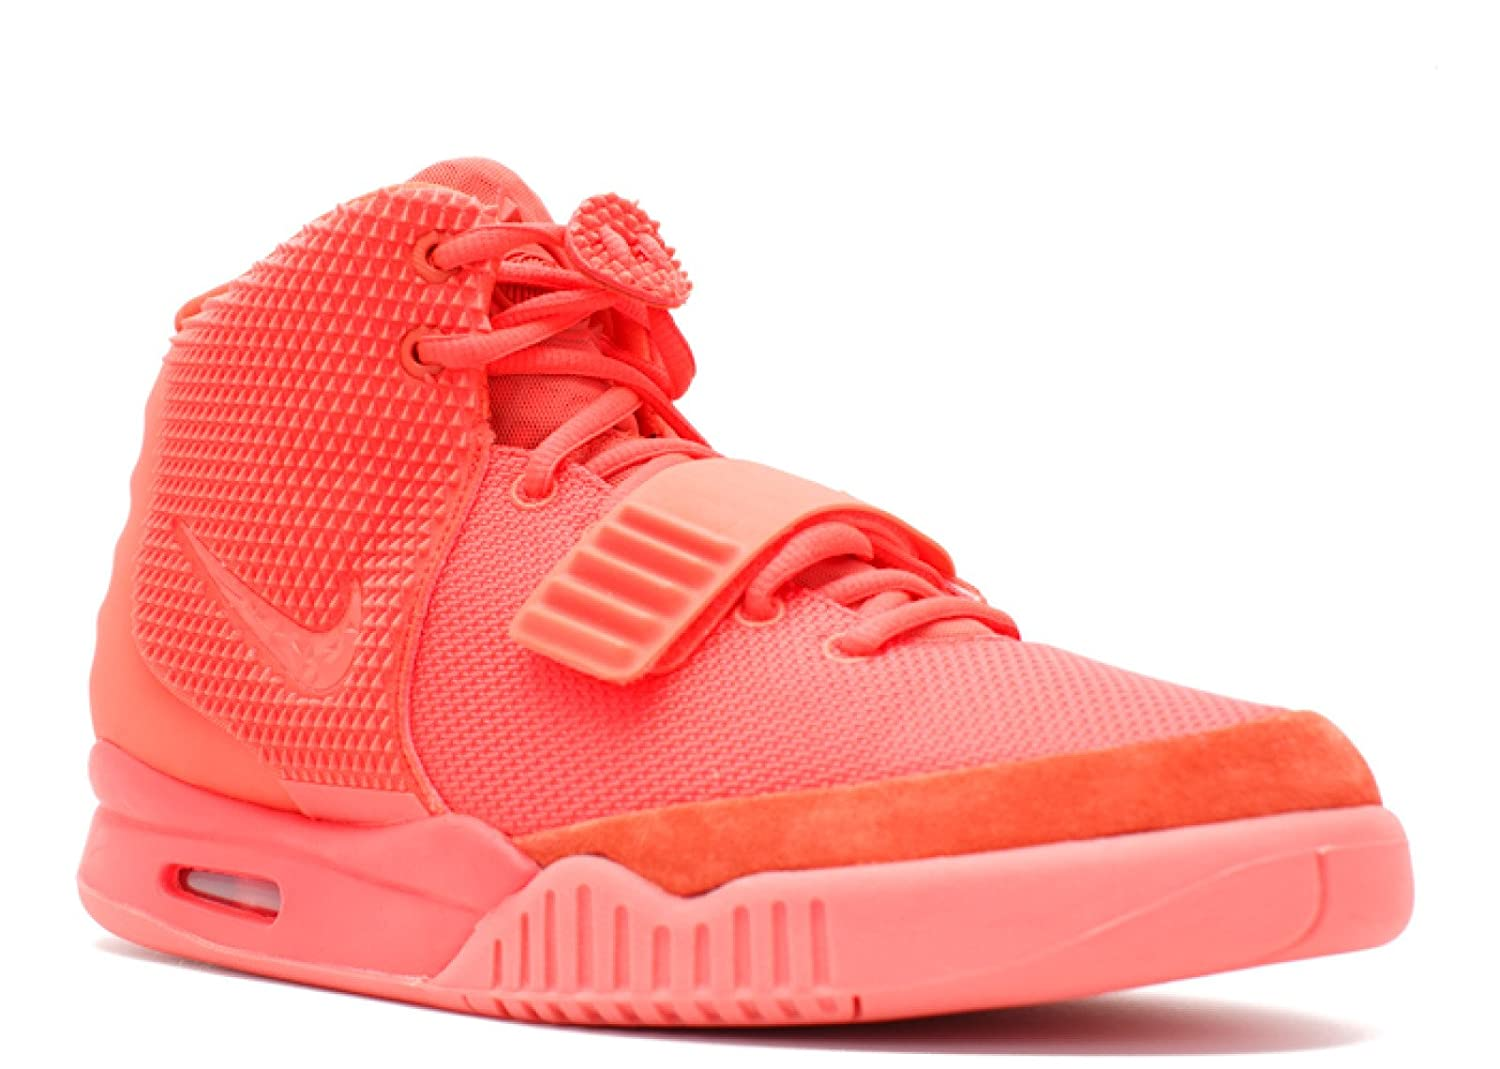 9d082549cee NIKE AIR Yeezy 2 SP 'RED October' - 508214-660